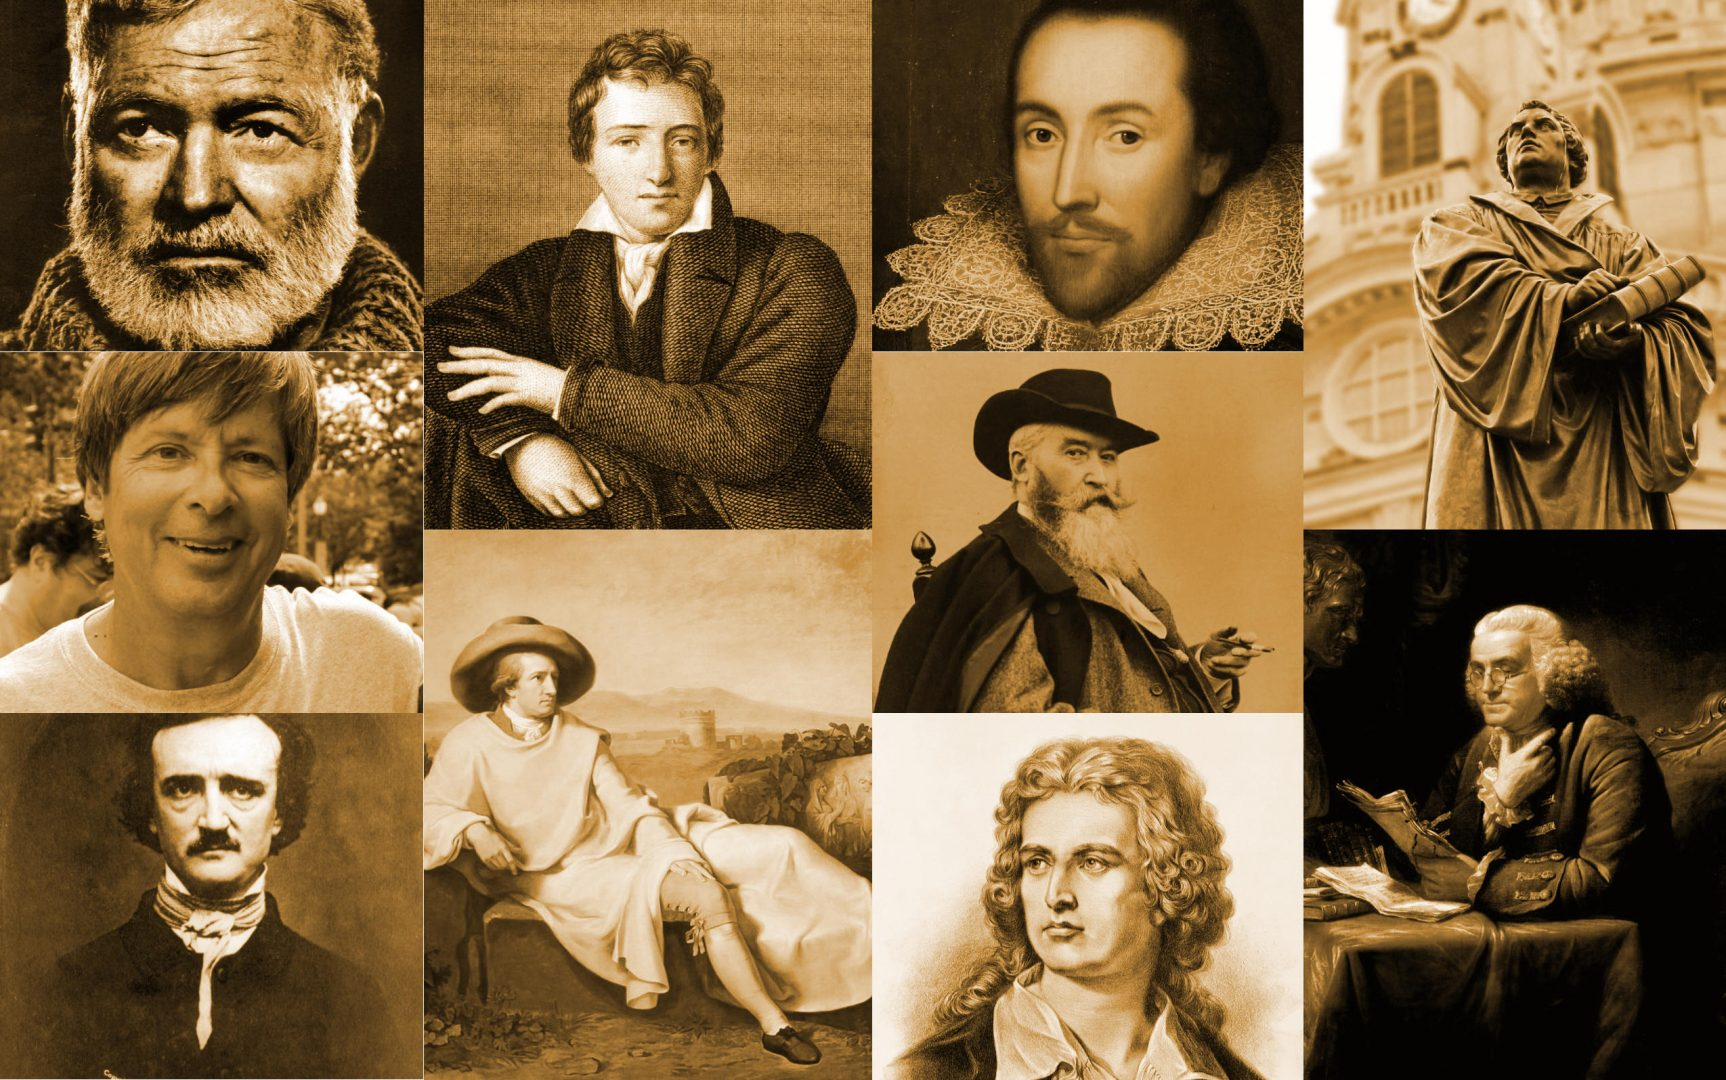 A collage of poets and thinkers